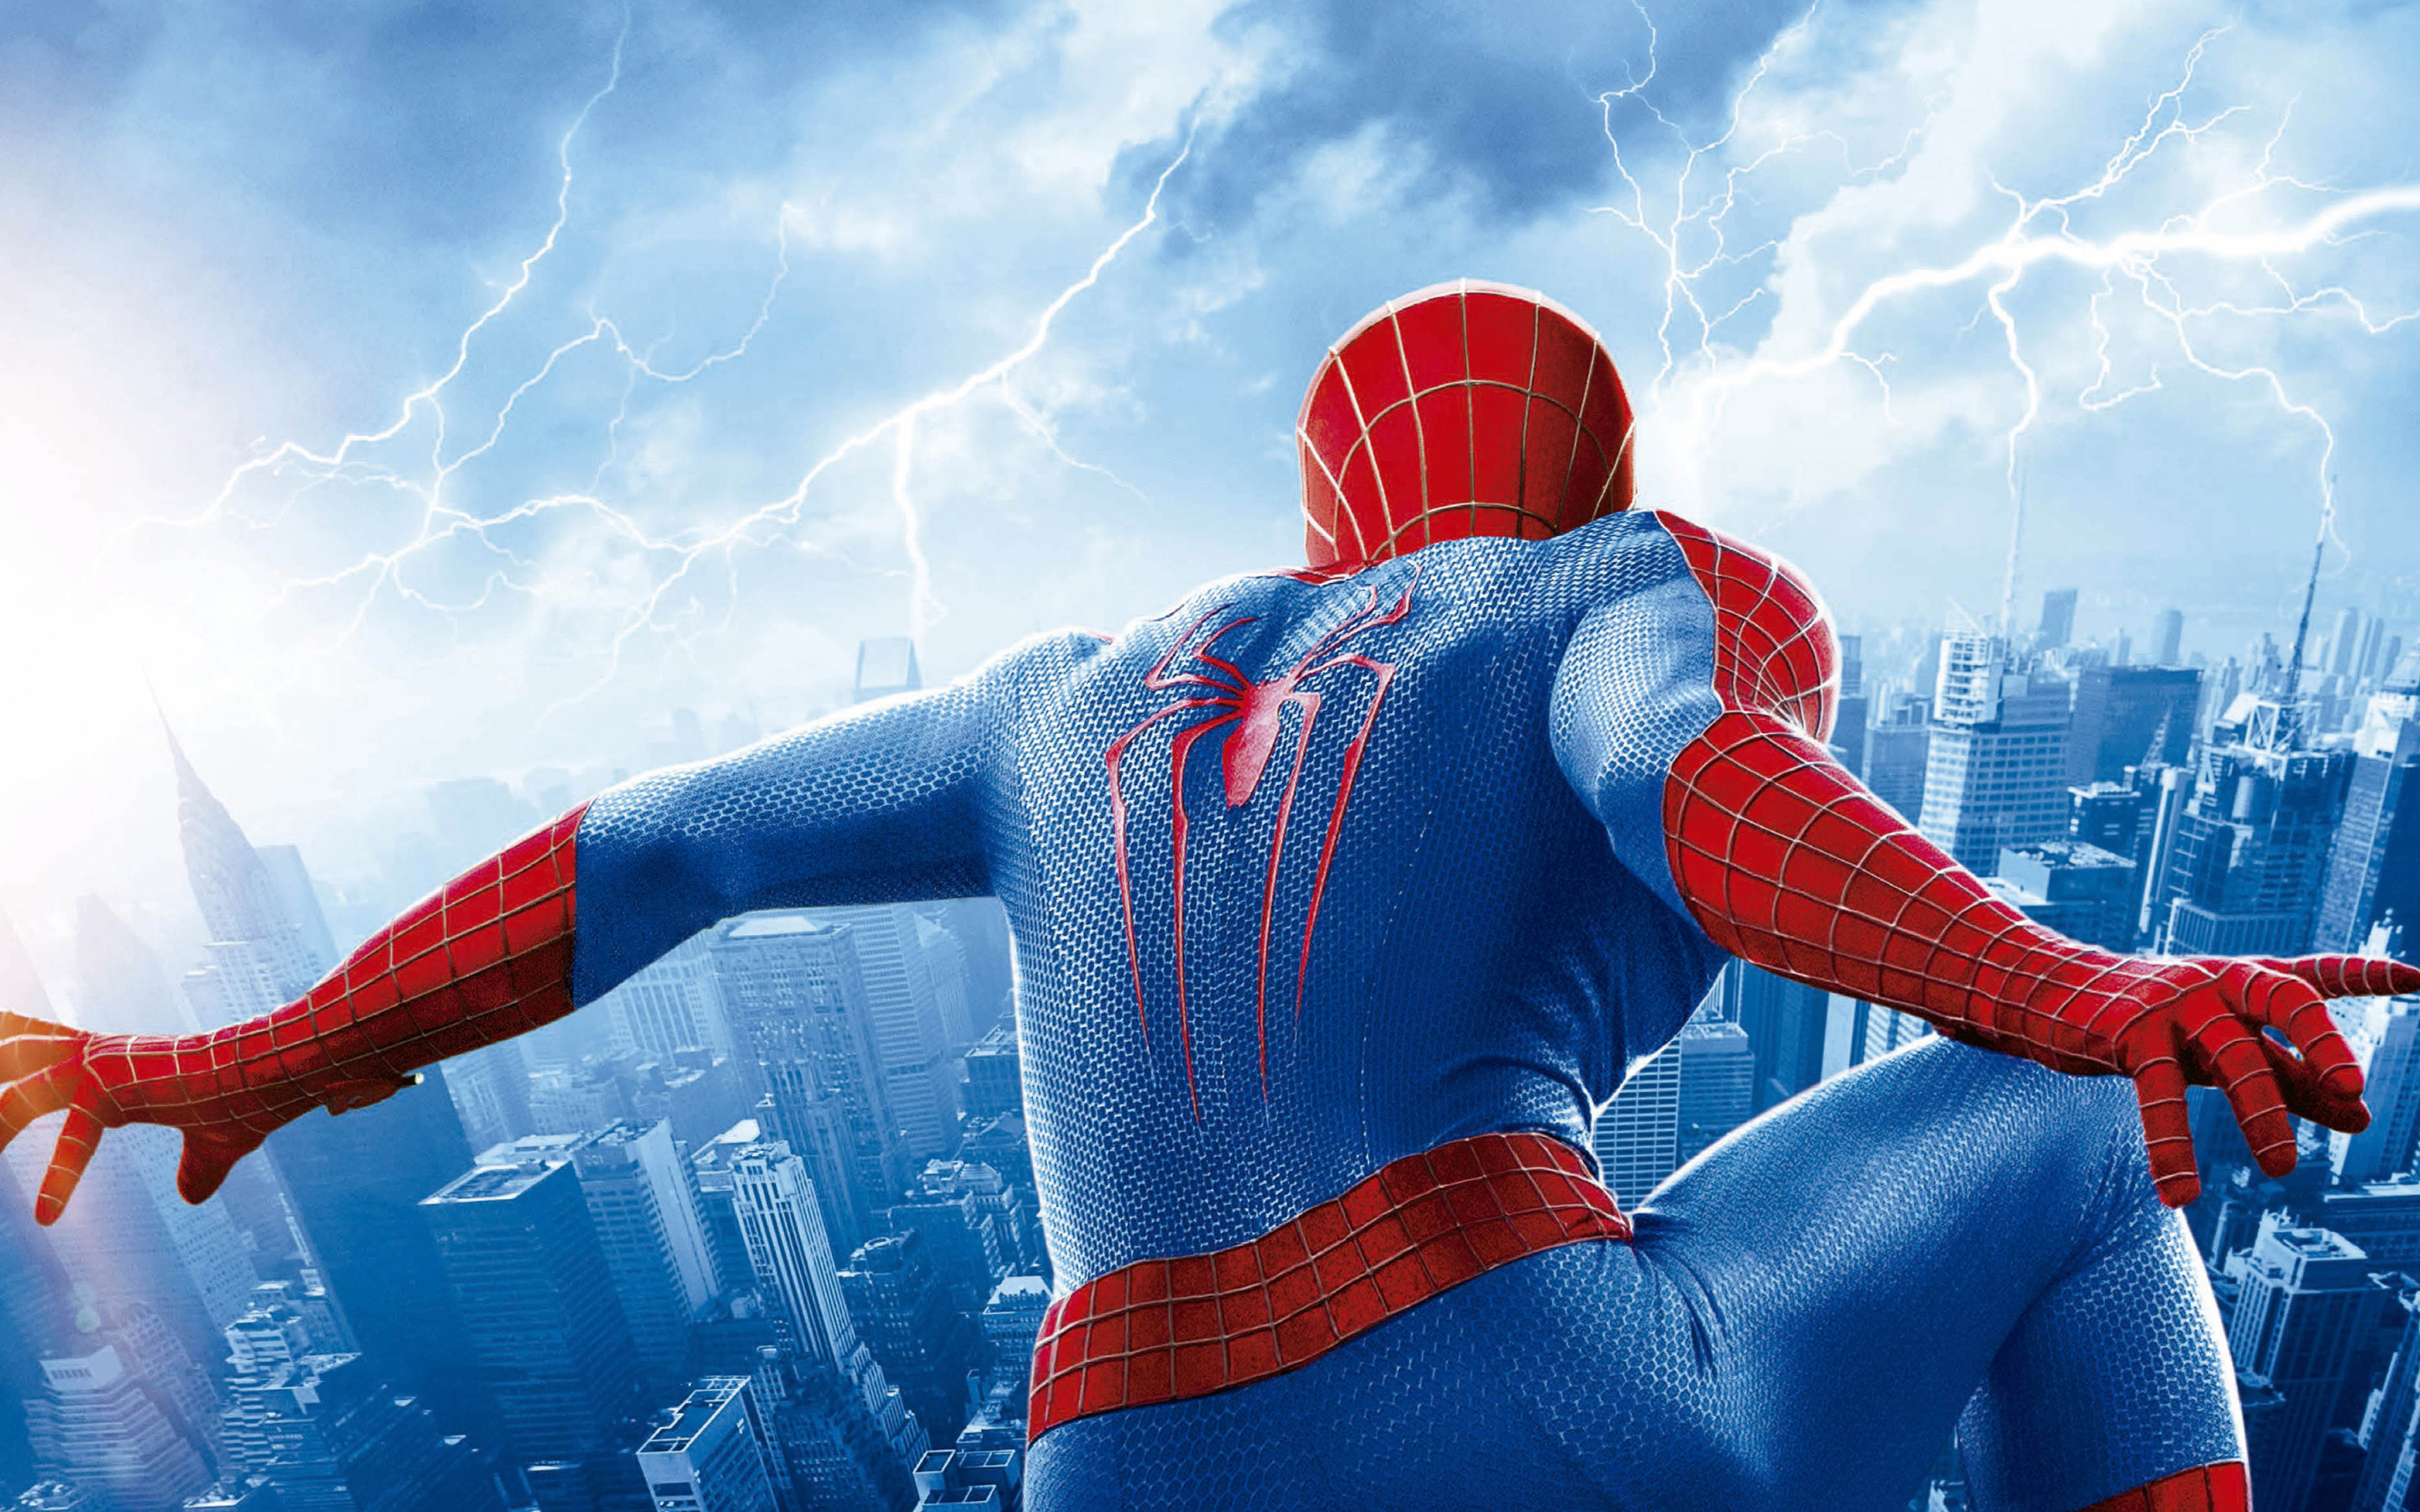 4404225_139788161522_the_amazing_spider_man_2-wide.jpg